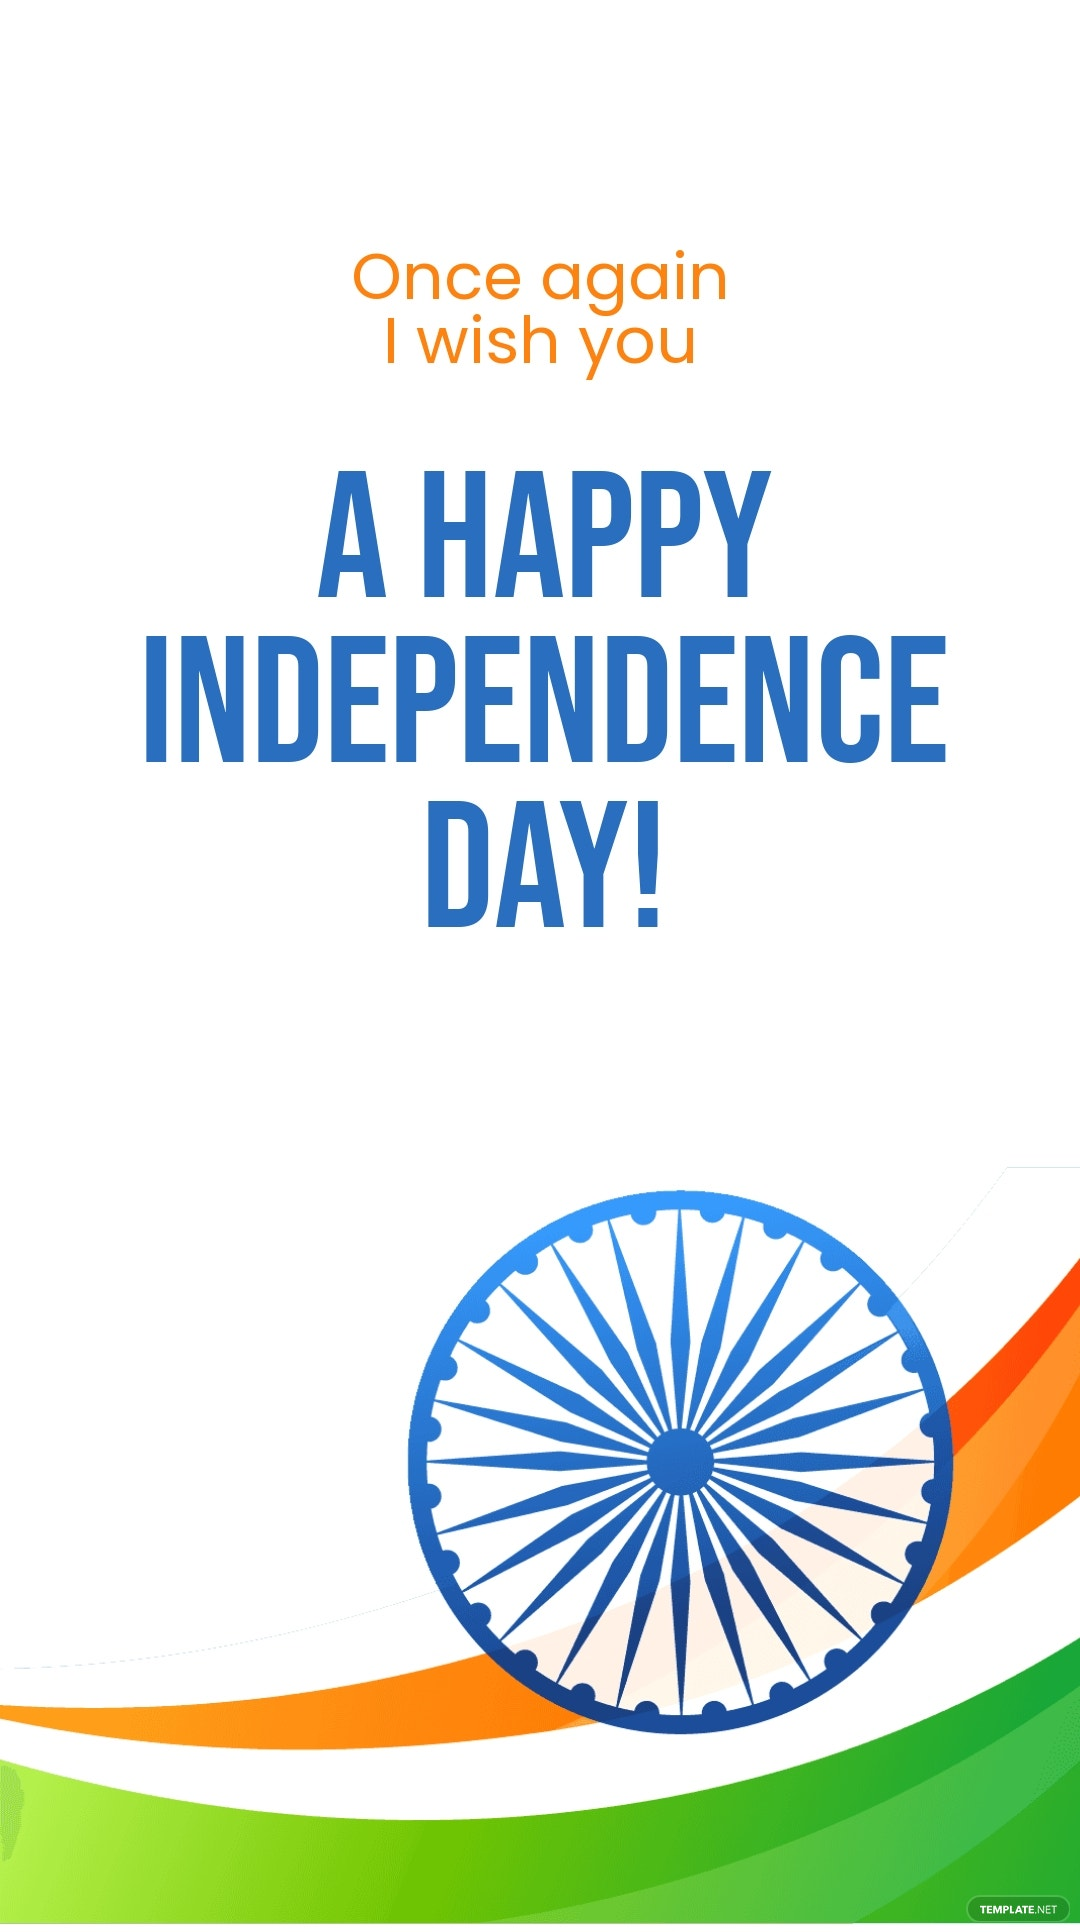 Happy Indian Independence Day Instagram Story Template 4.jpe